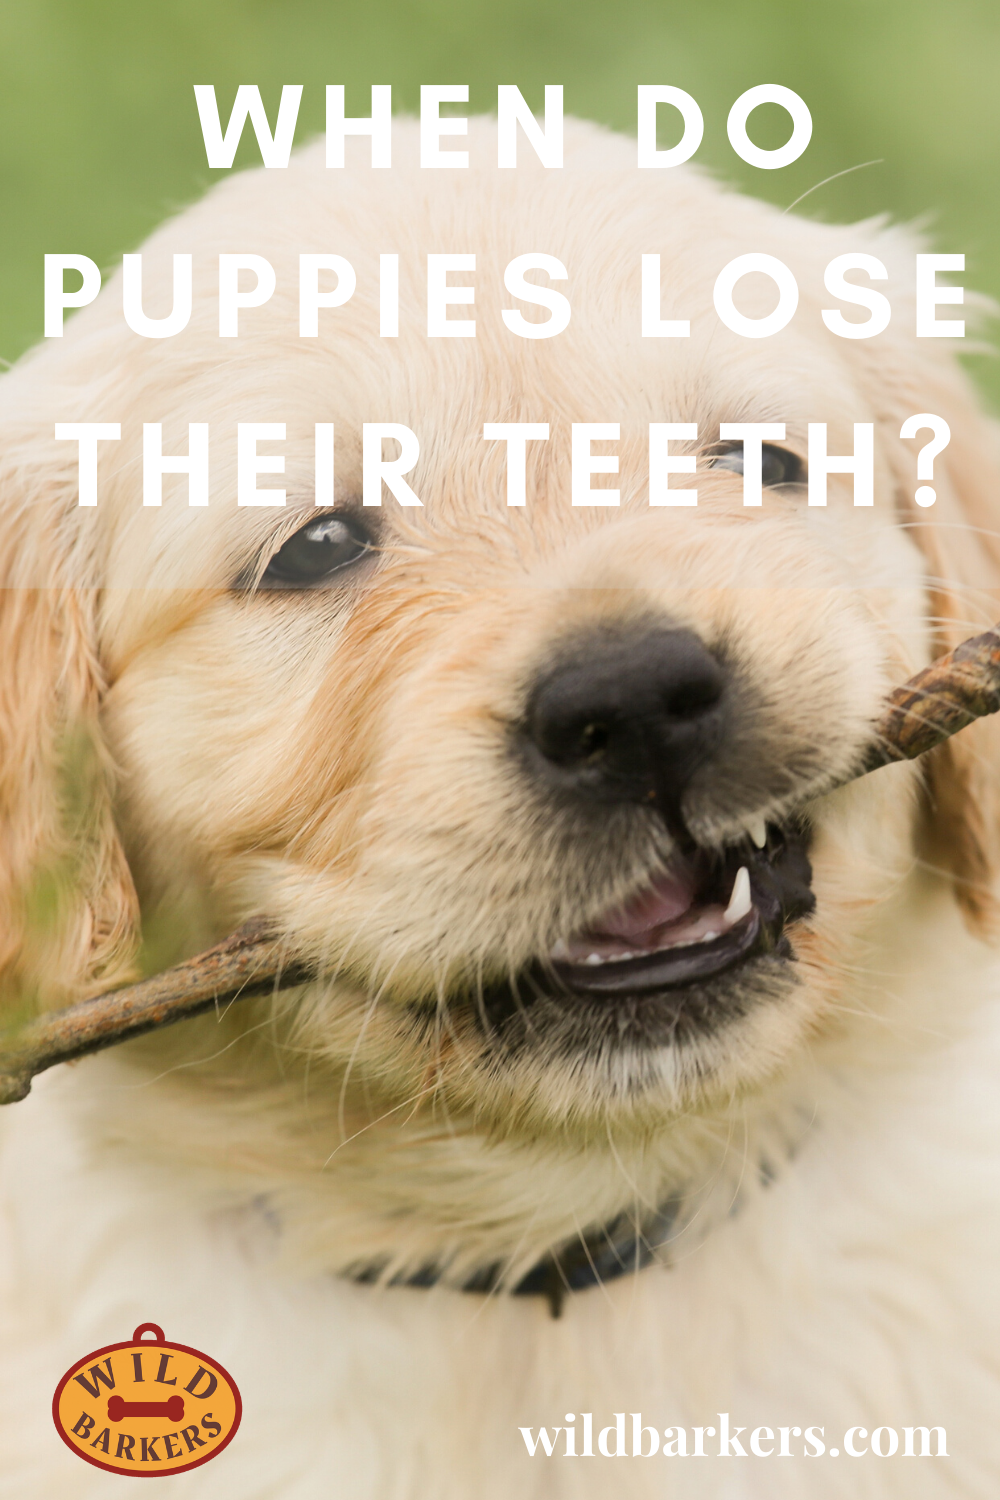 When Do Puppies Lose Their Teeth Teeth Development And Puppy Teething In 2020 Puppy Teething Puppy Biting Puppies